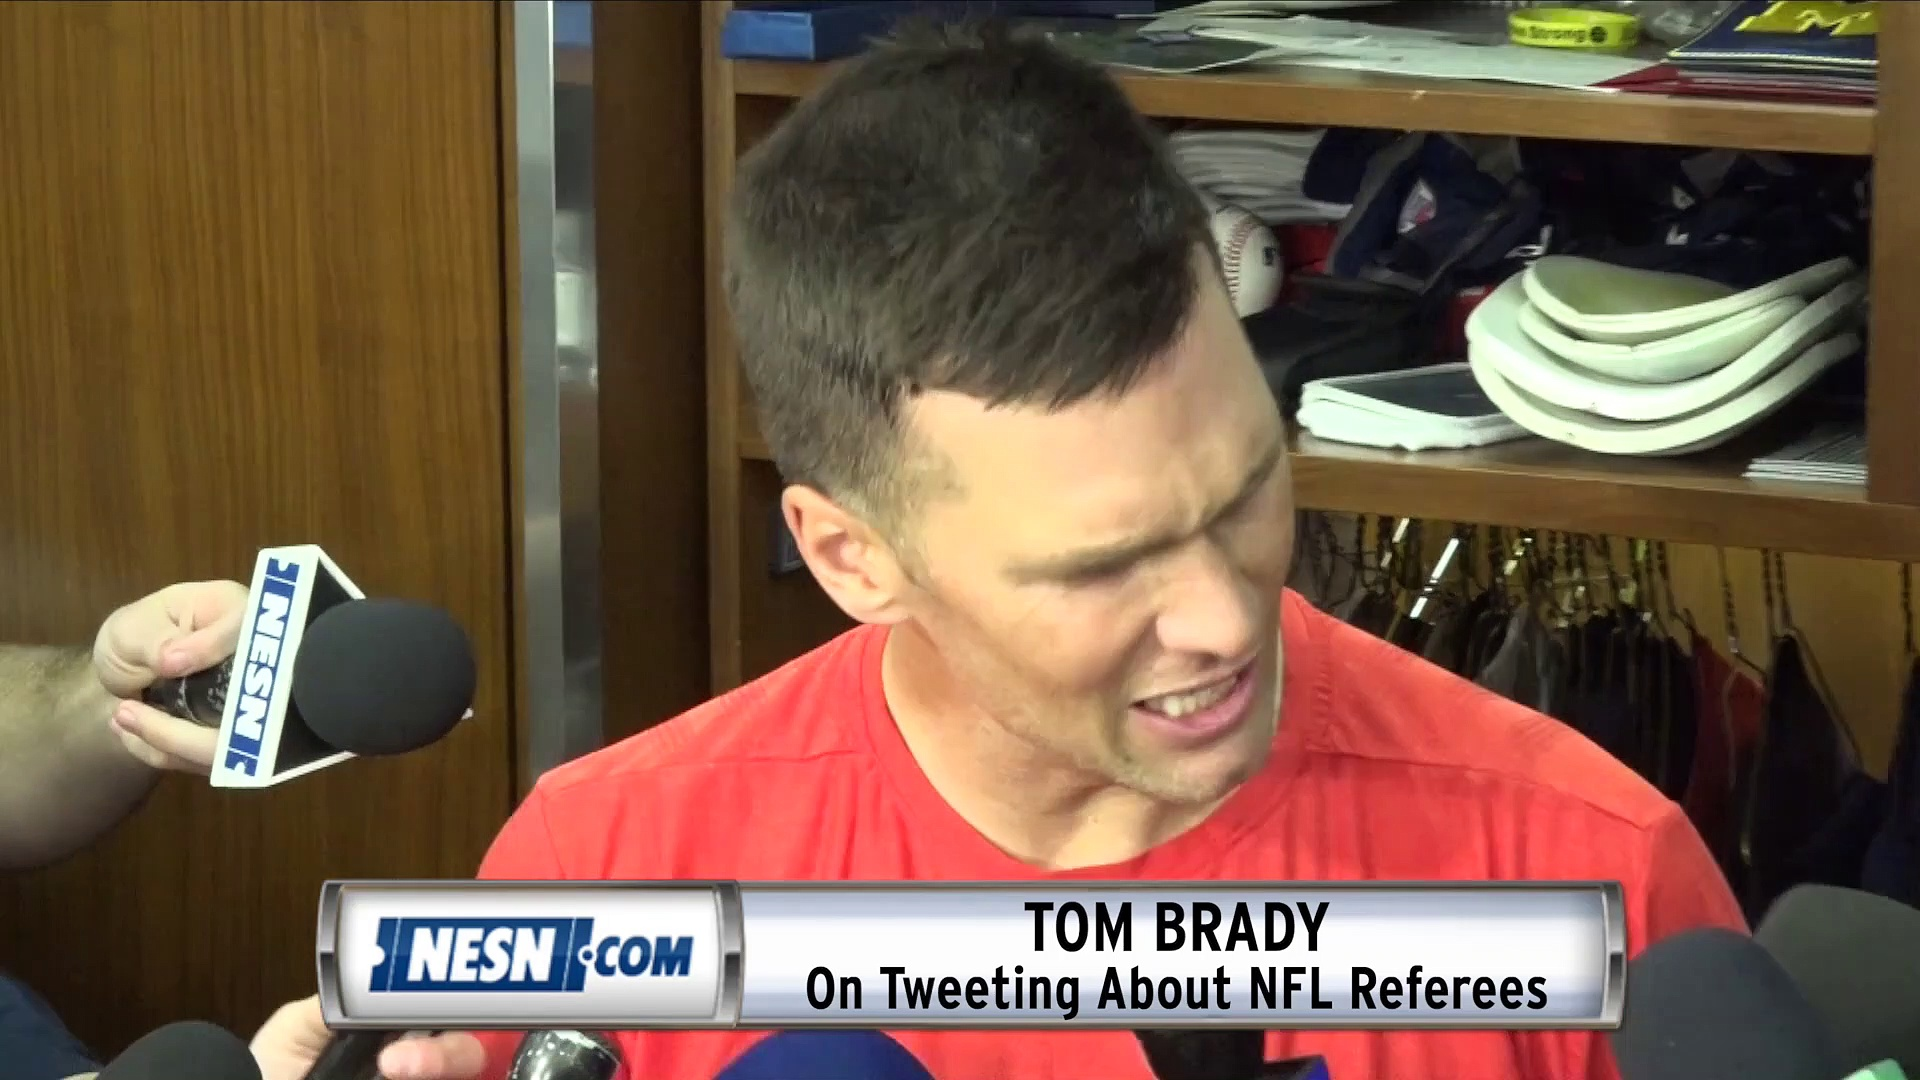 Tom Brady On His Twitter Rant Against NFL Referees